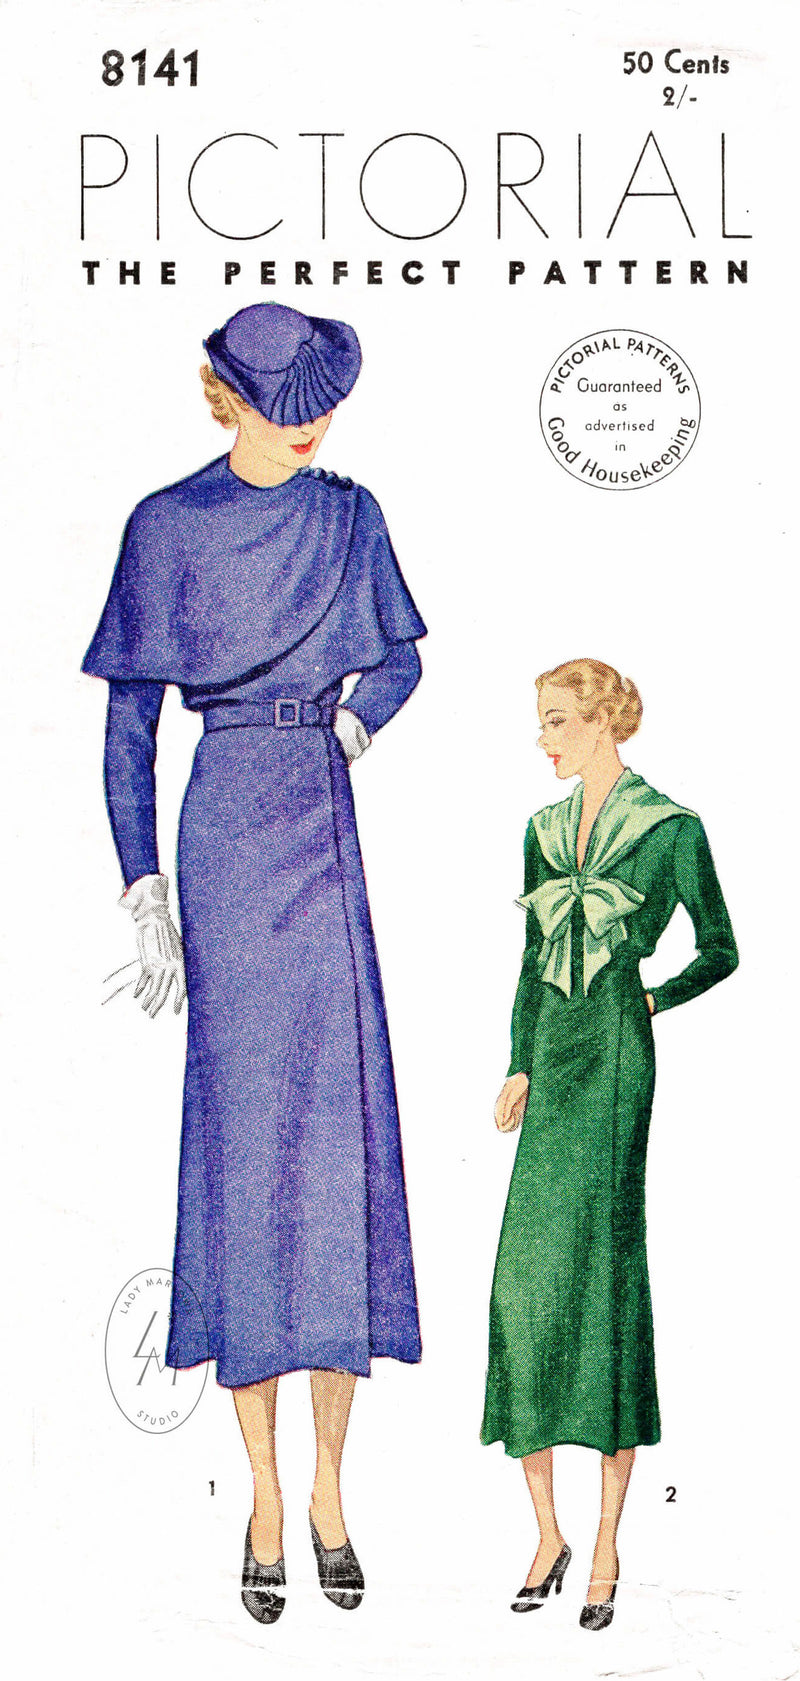 Pictorial Review 8141 1930s dress with wrap cape or bow tie collar vintage sewing pattern reproduction